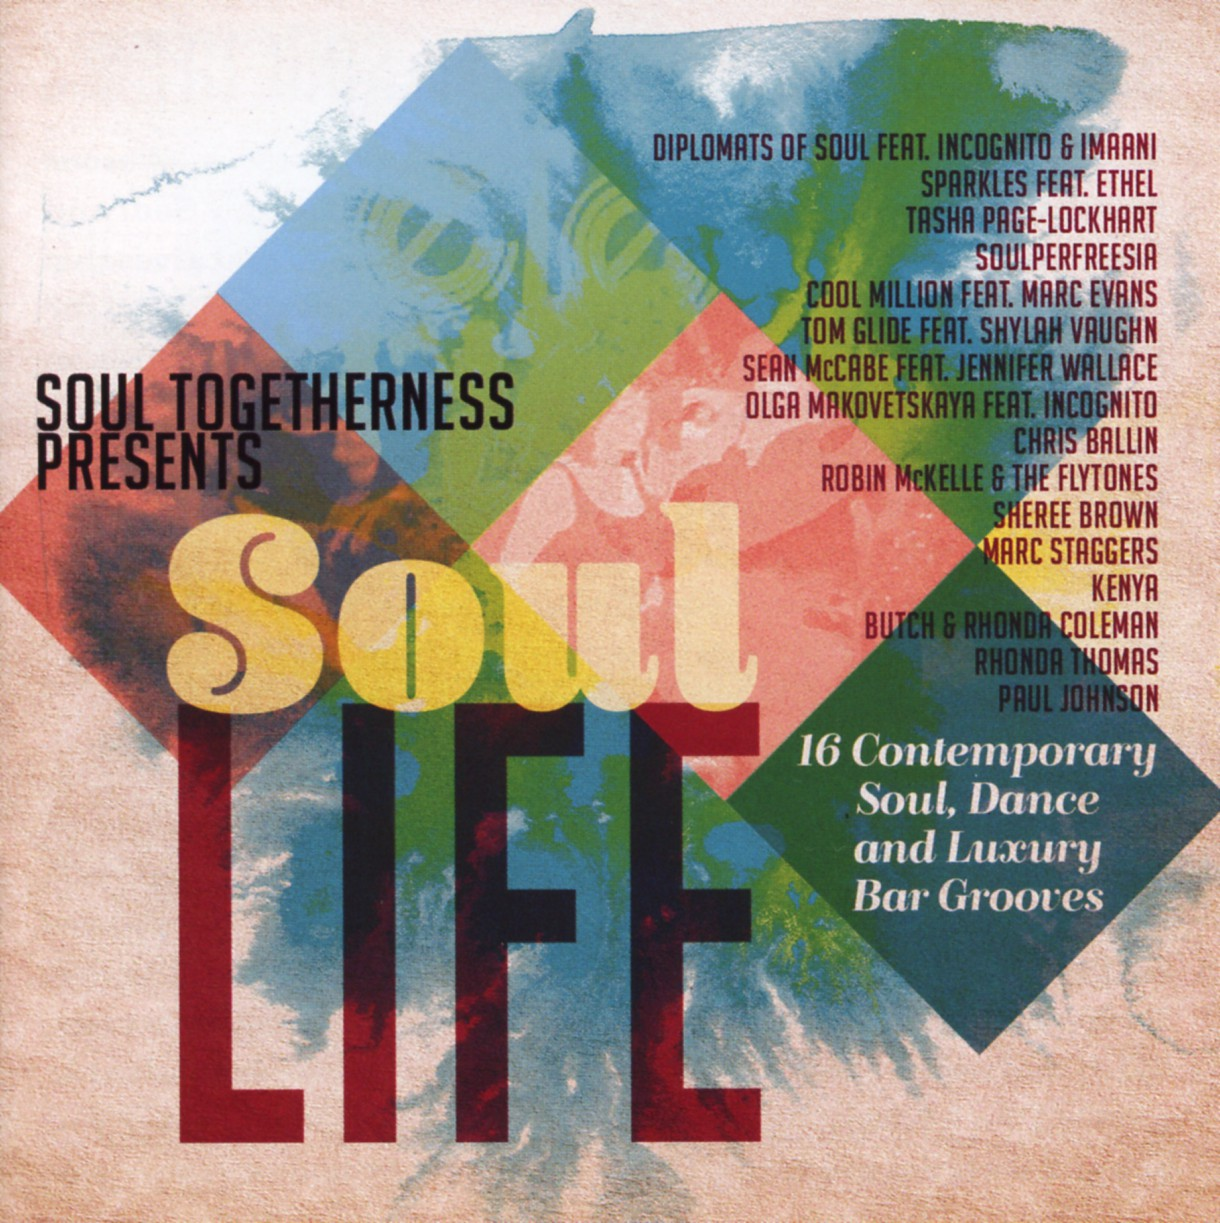 Details about Expansion Records - Soul Togetherness Presents Soul Life